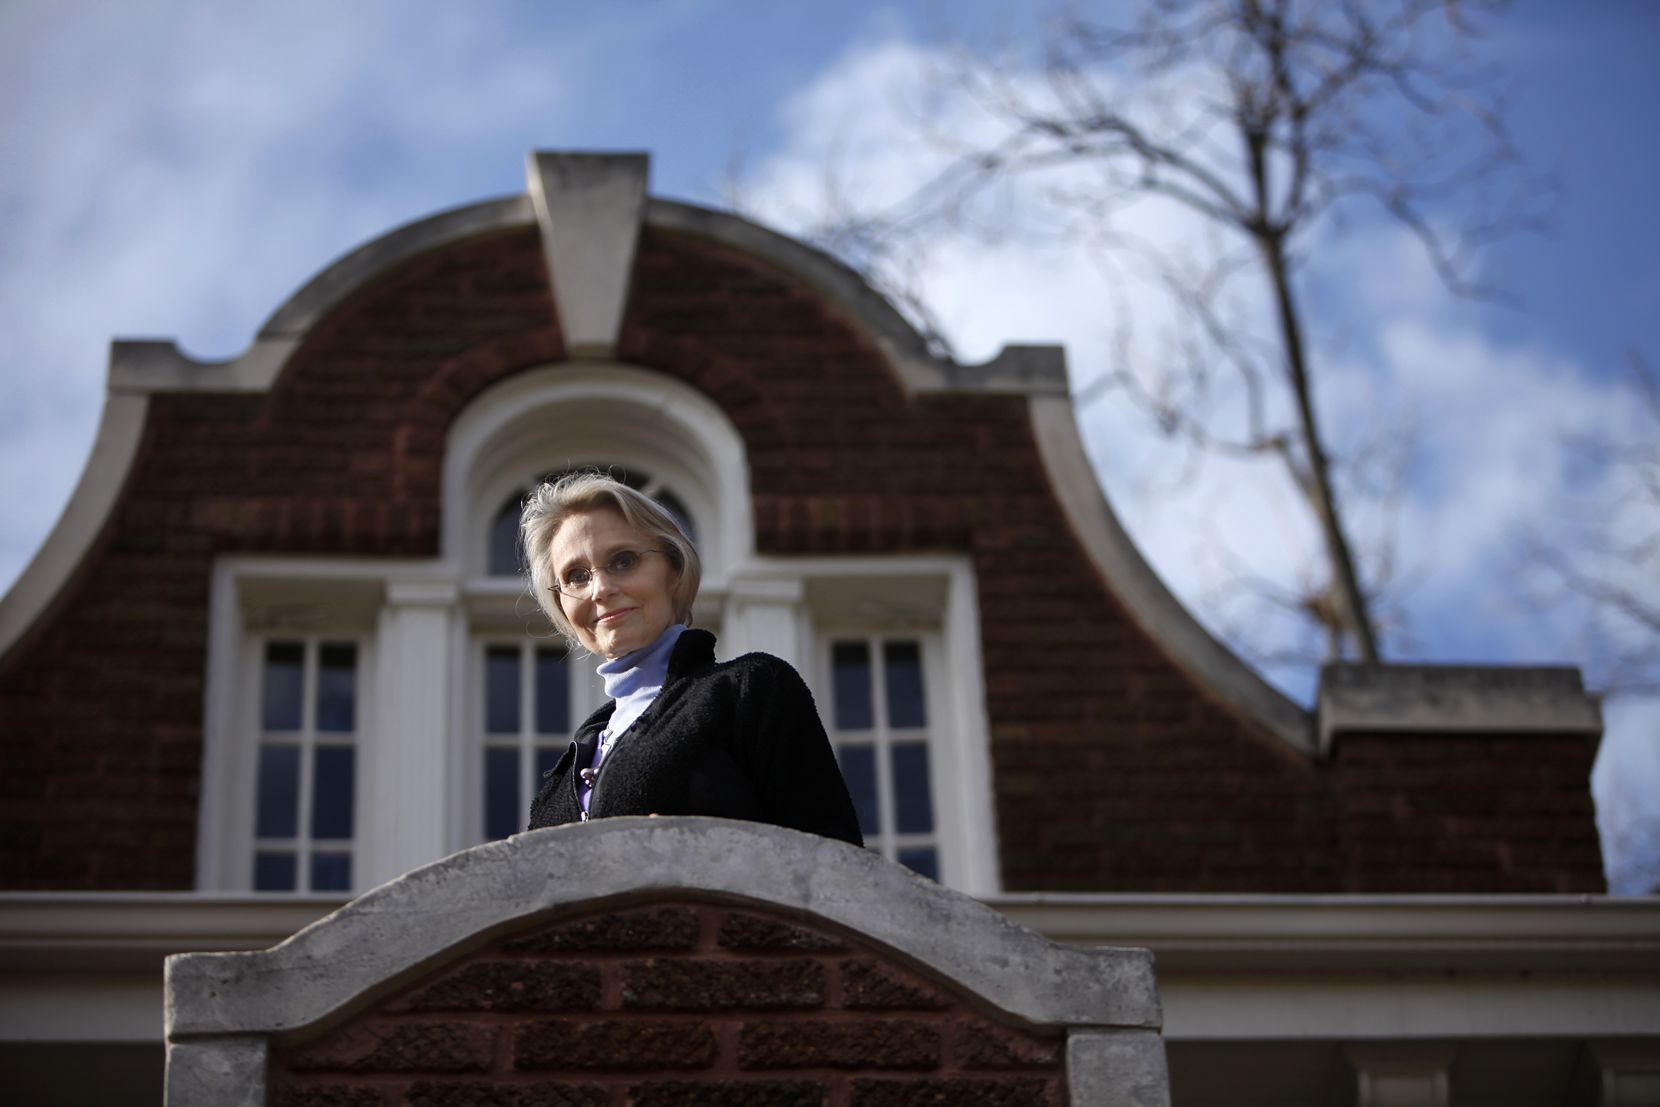 Virginia McAlester is widely credited as being a founding member of Preservation Dallas in the early 1970s, which led a successful effort to protect Swiss Avenue from redevelopment. She is shown here on the balcony of her Swiss Avenue home in 2011.